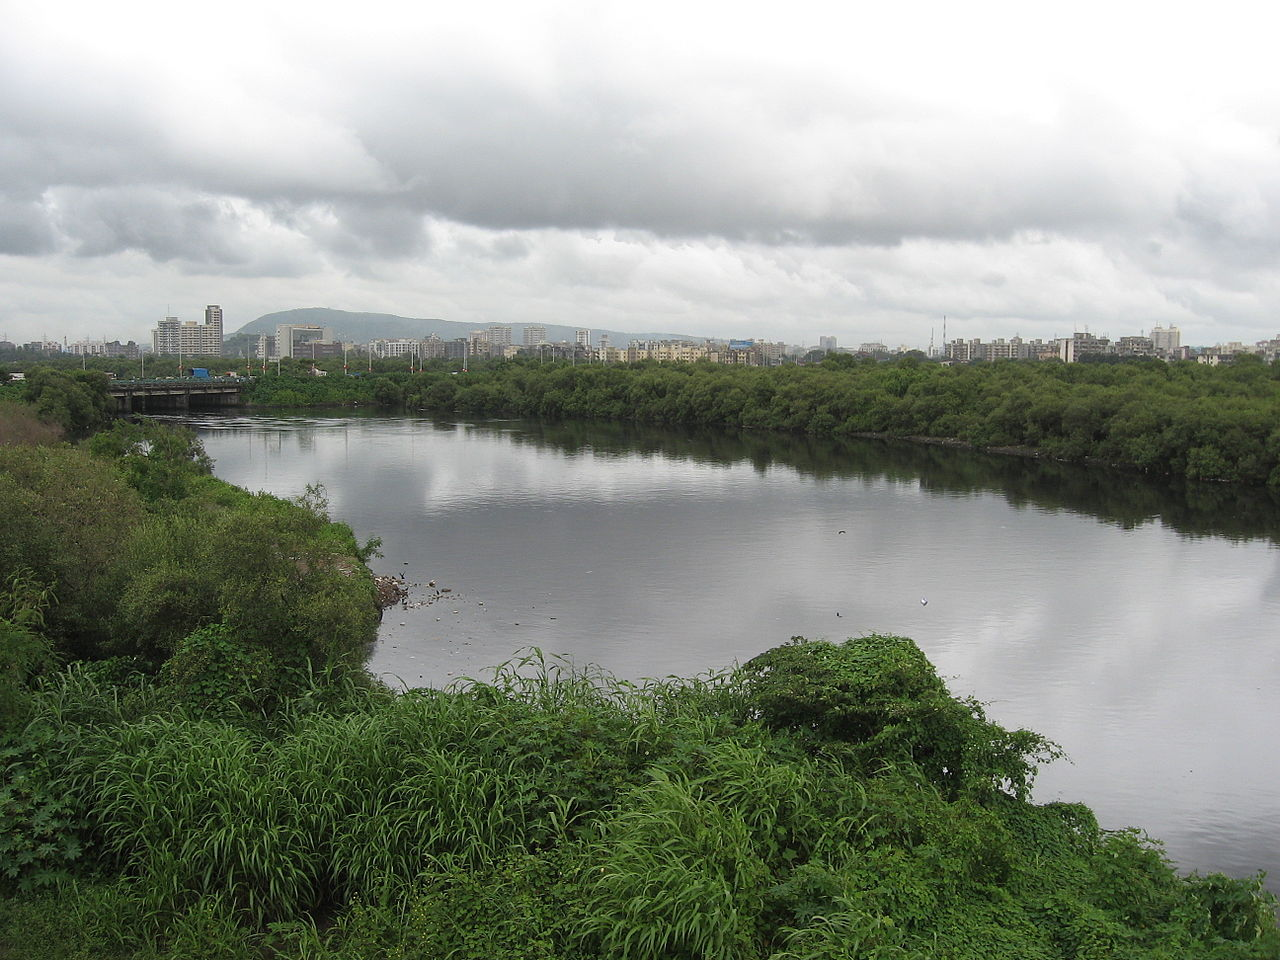 River Mithi that separates suburban and city districts of Mumbai. Image: Nicholas, Wikimedia Commons